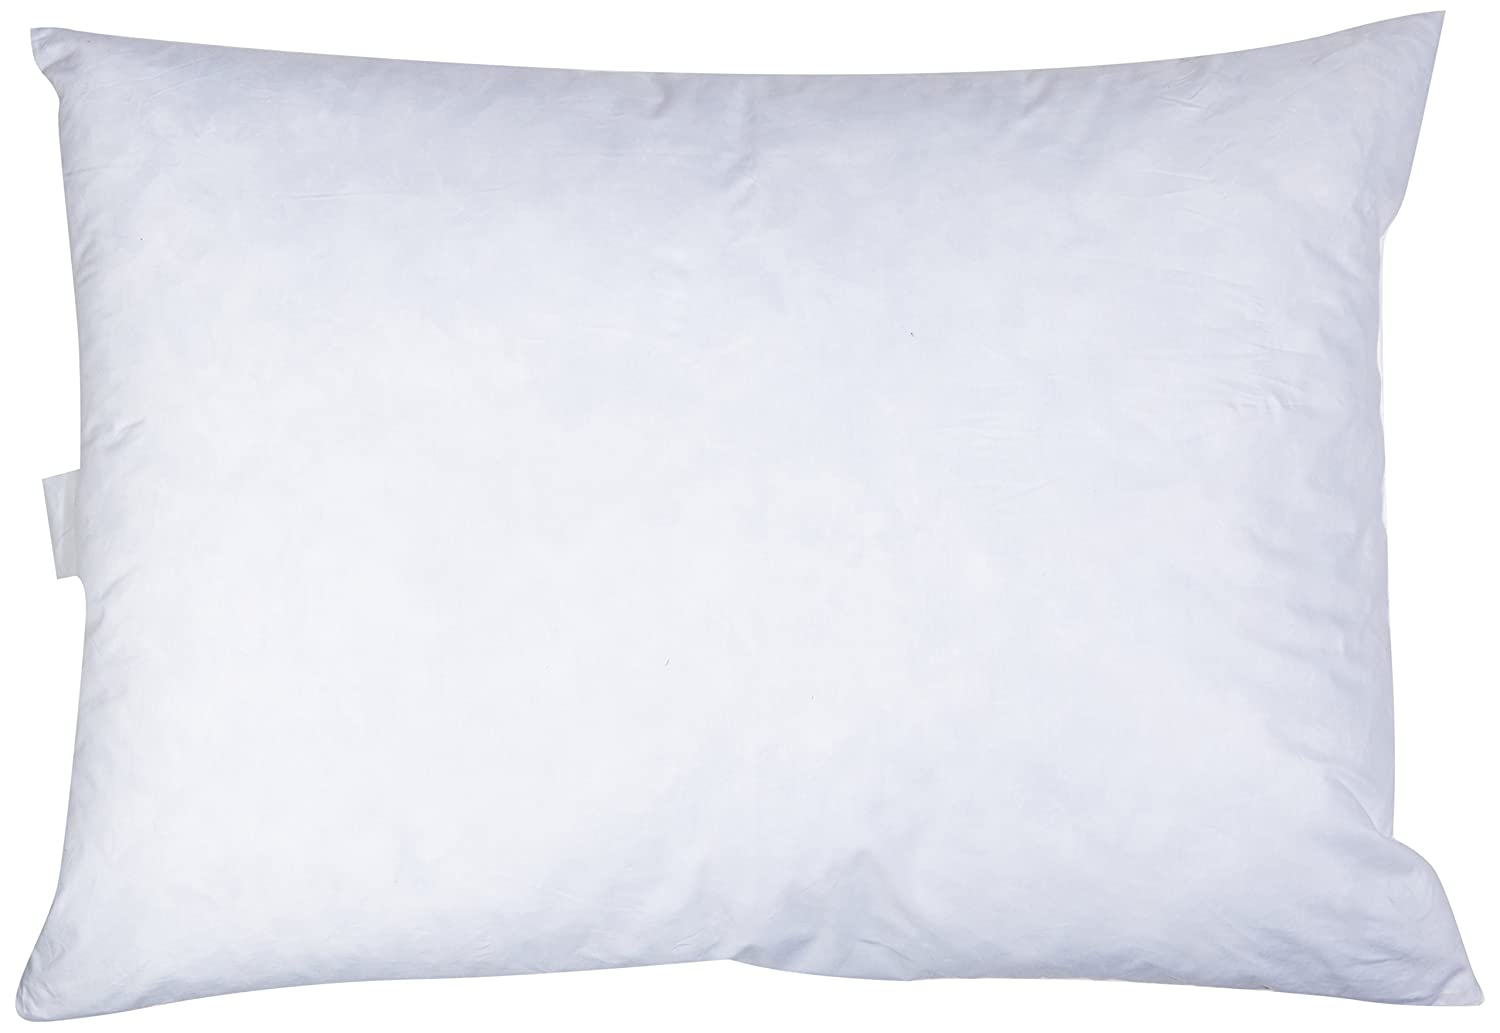 1200 Thread Count%100 Cotton- Super Soft Luxurious SOLID Feather/Goose Down SET of 2 PILLOWS- Standard Size